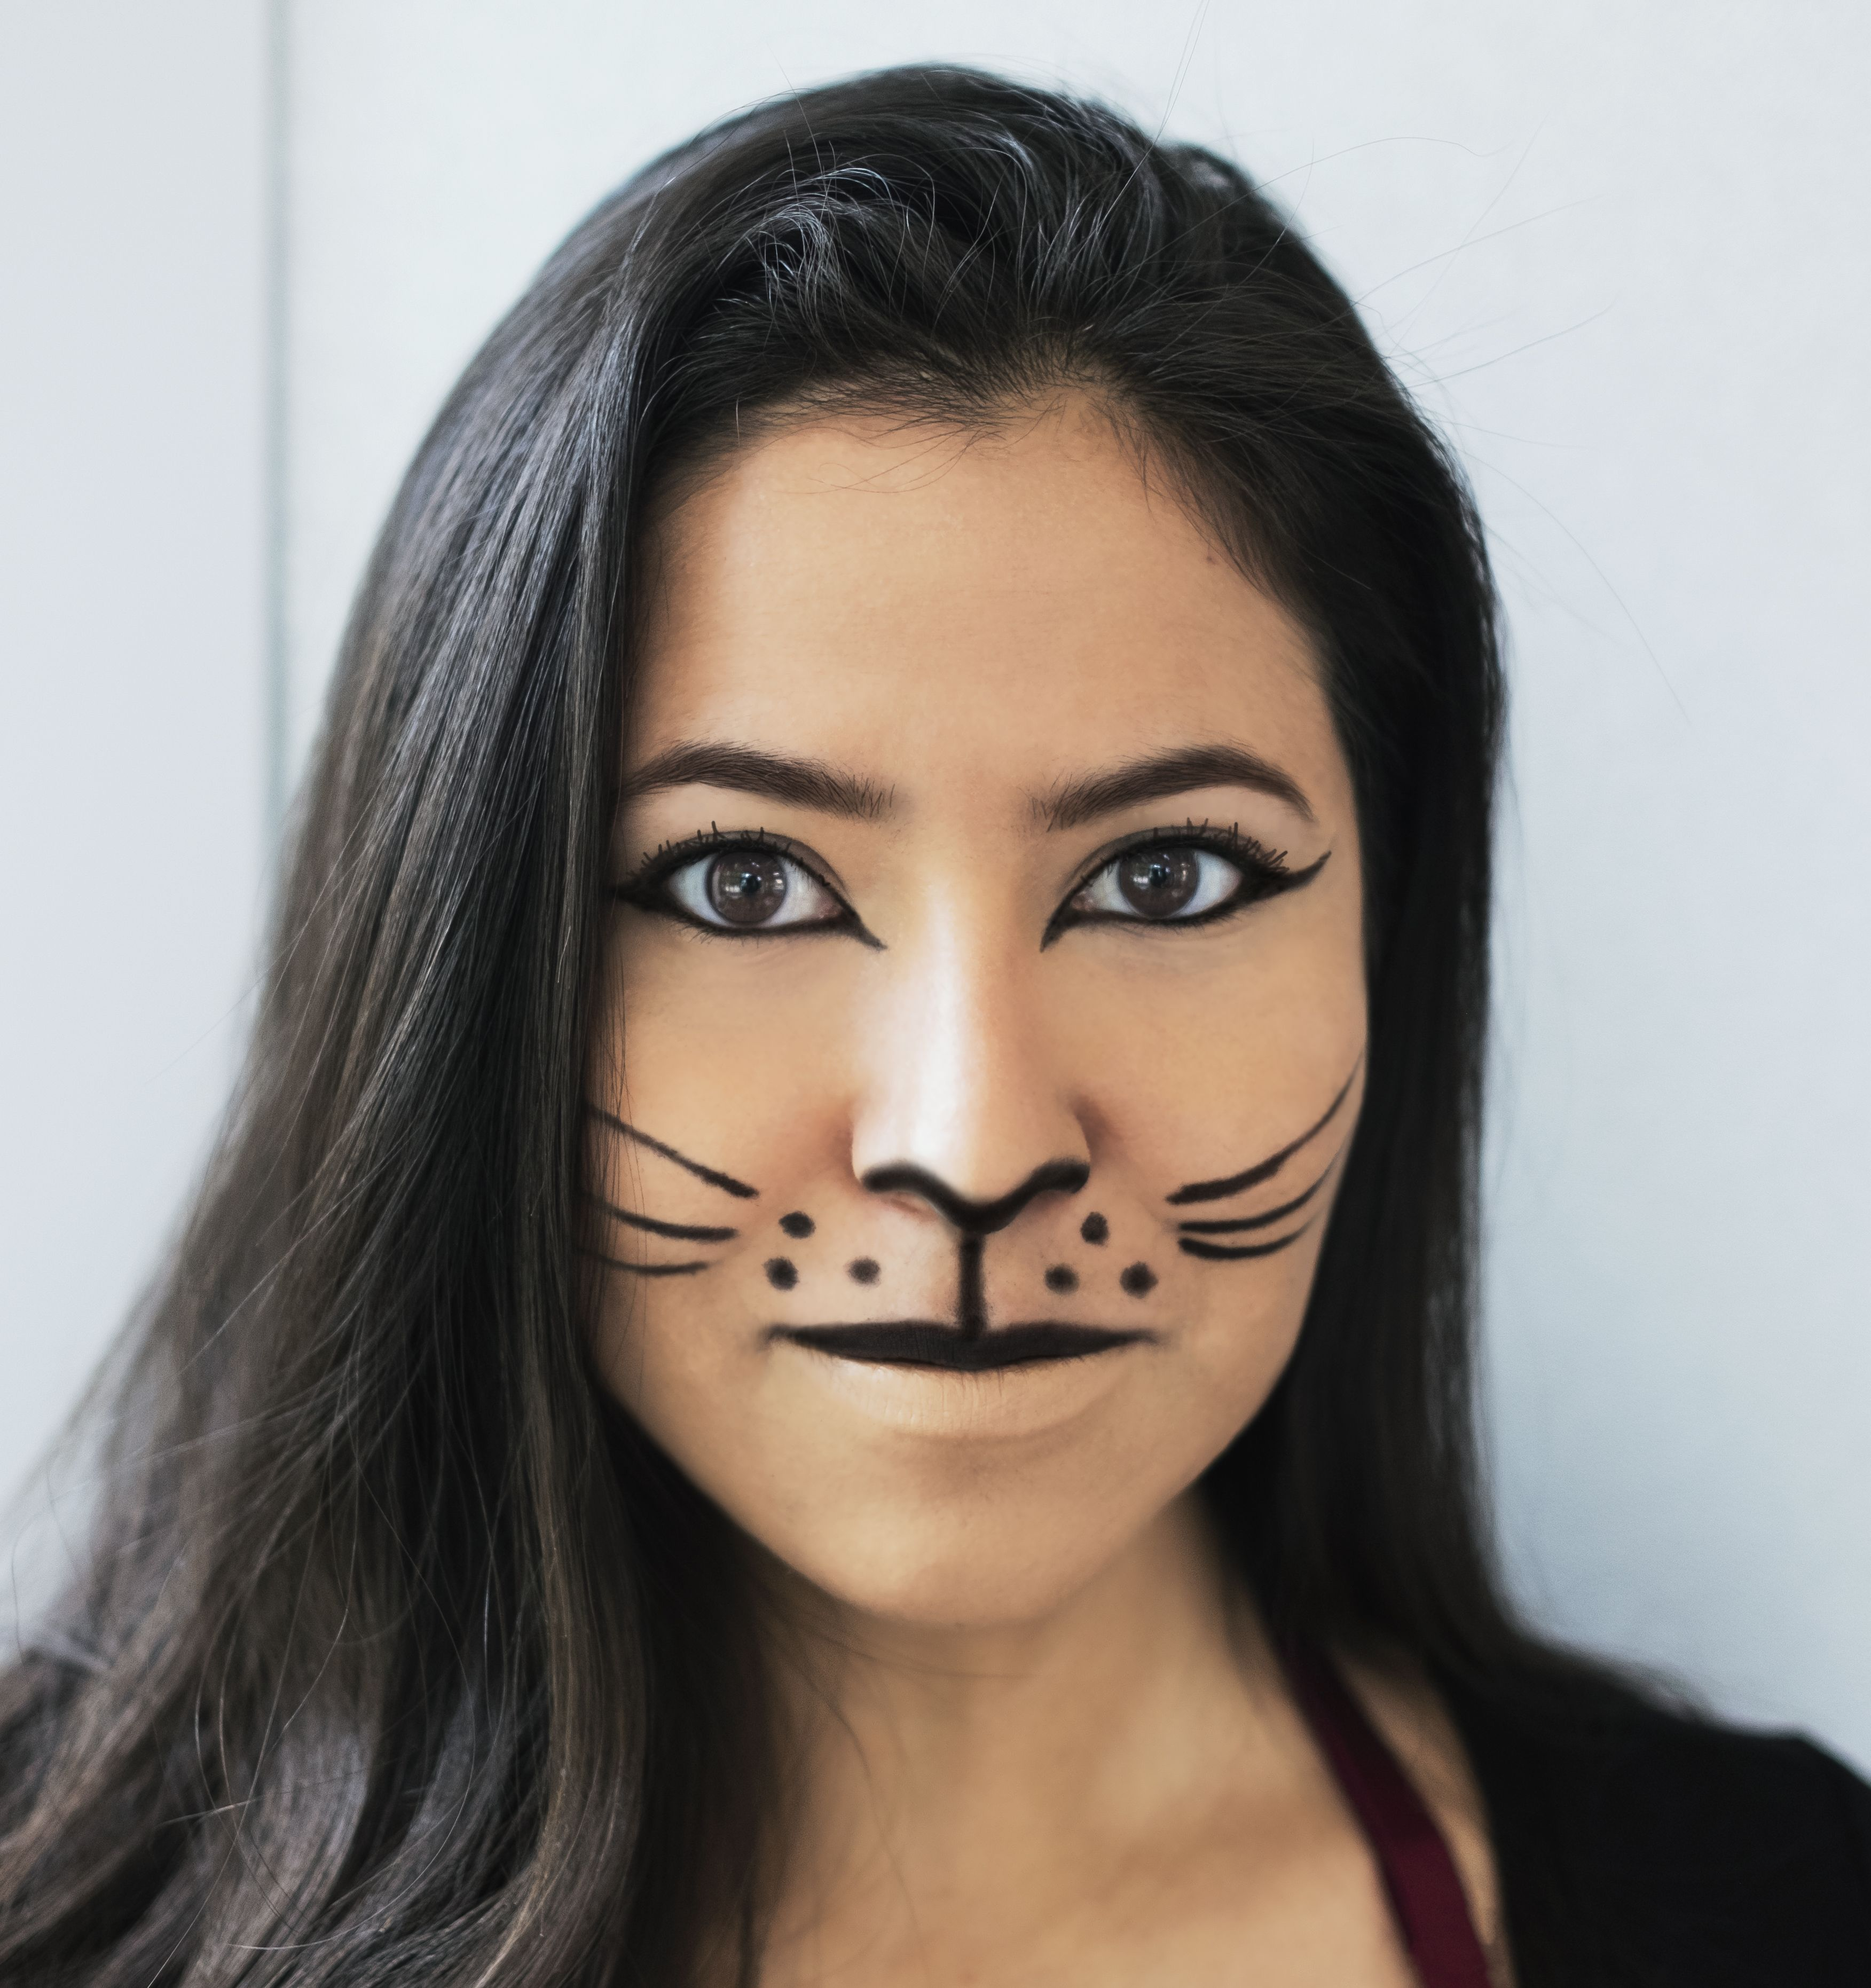 Easy Cat Halloween Makeup Cat Halloween Makeup Halloween Makeup Easy Tiger Makeup